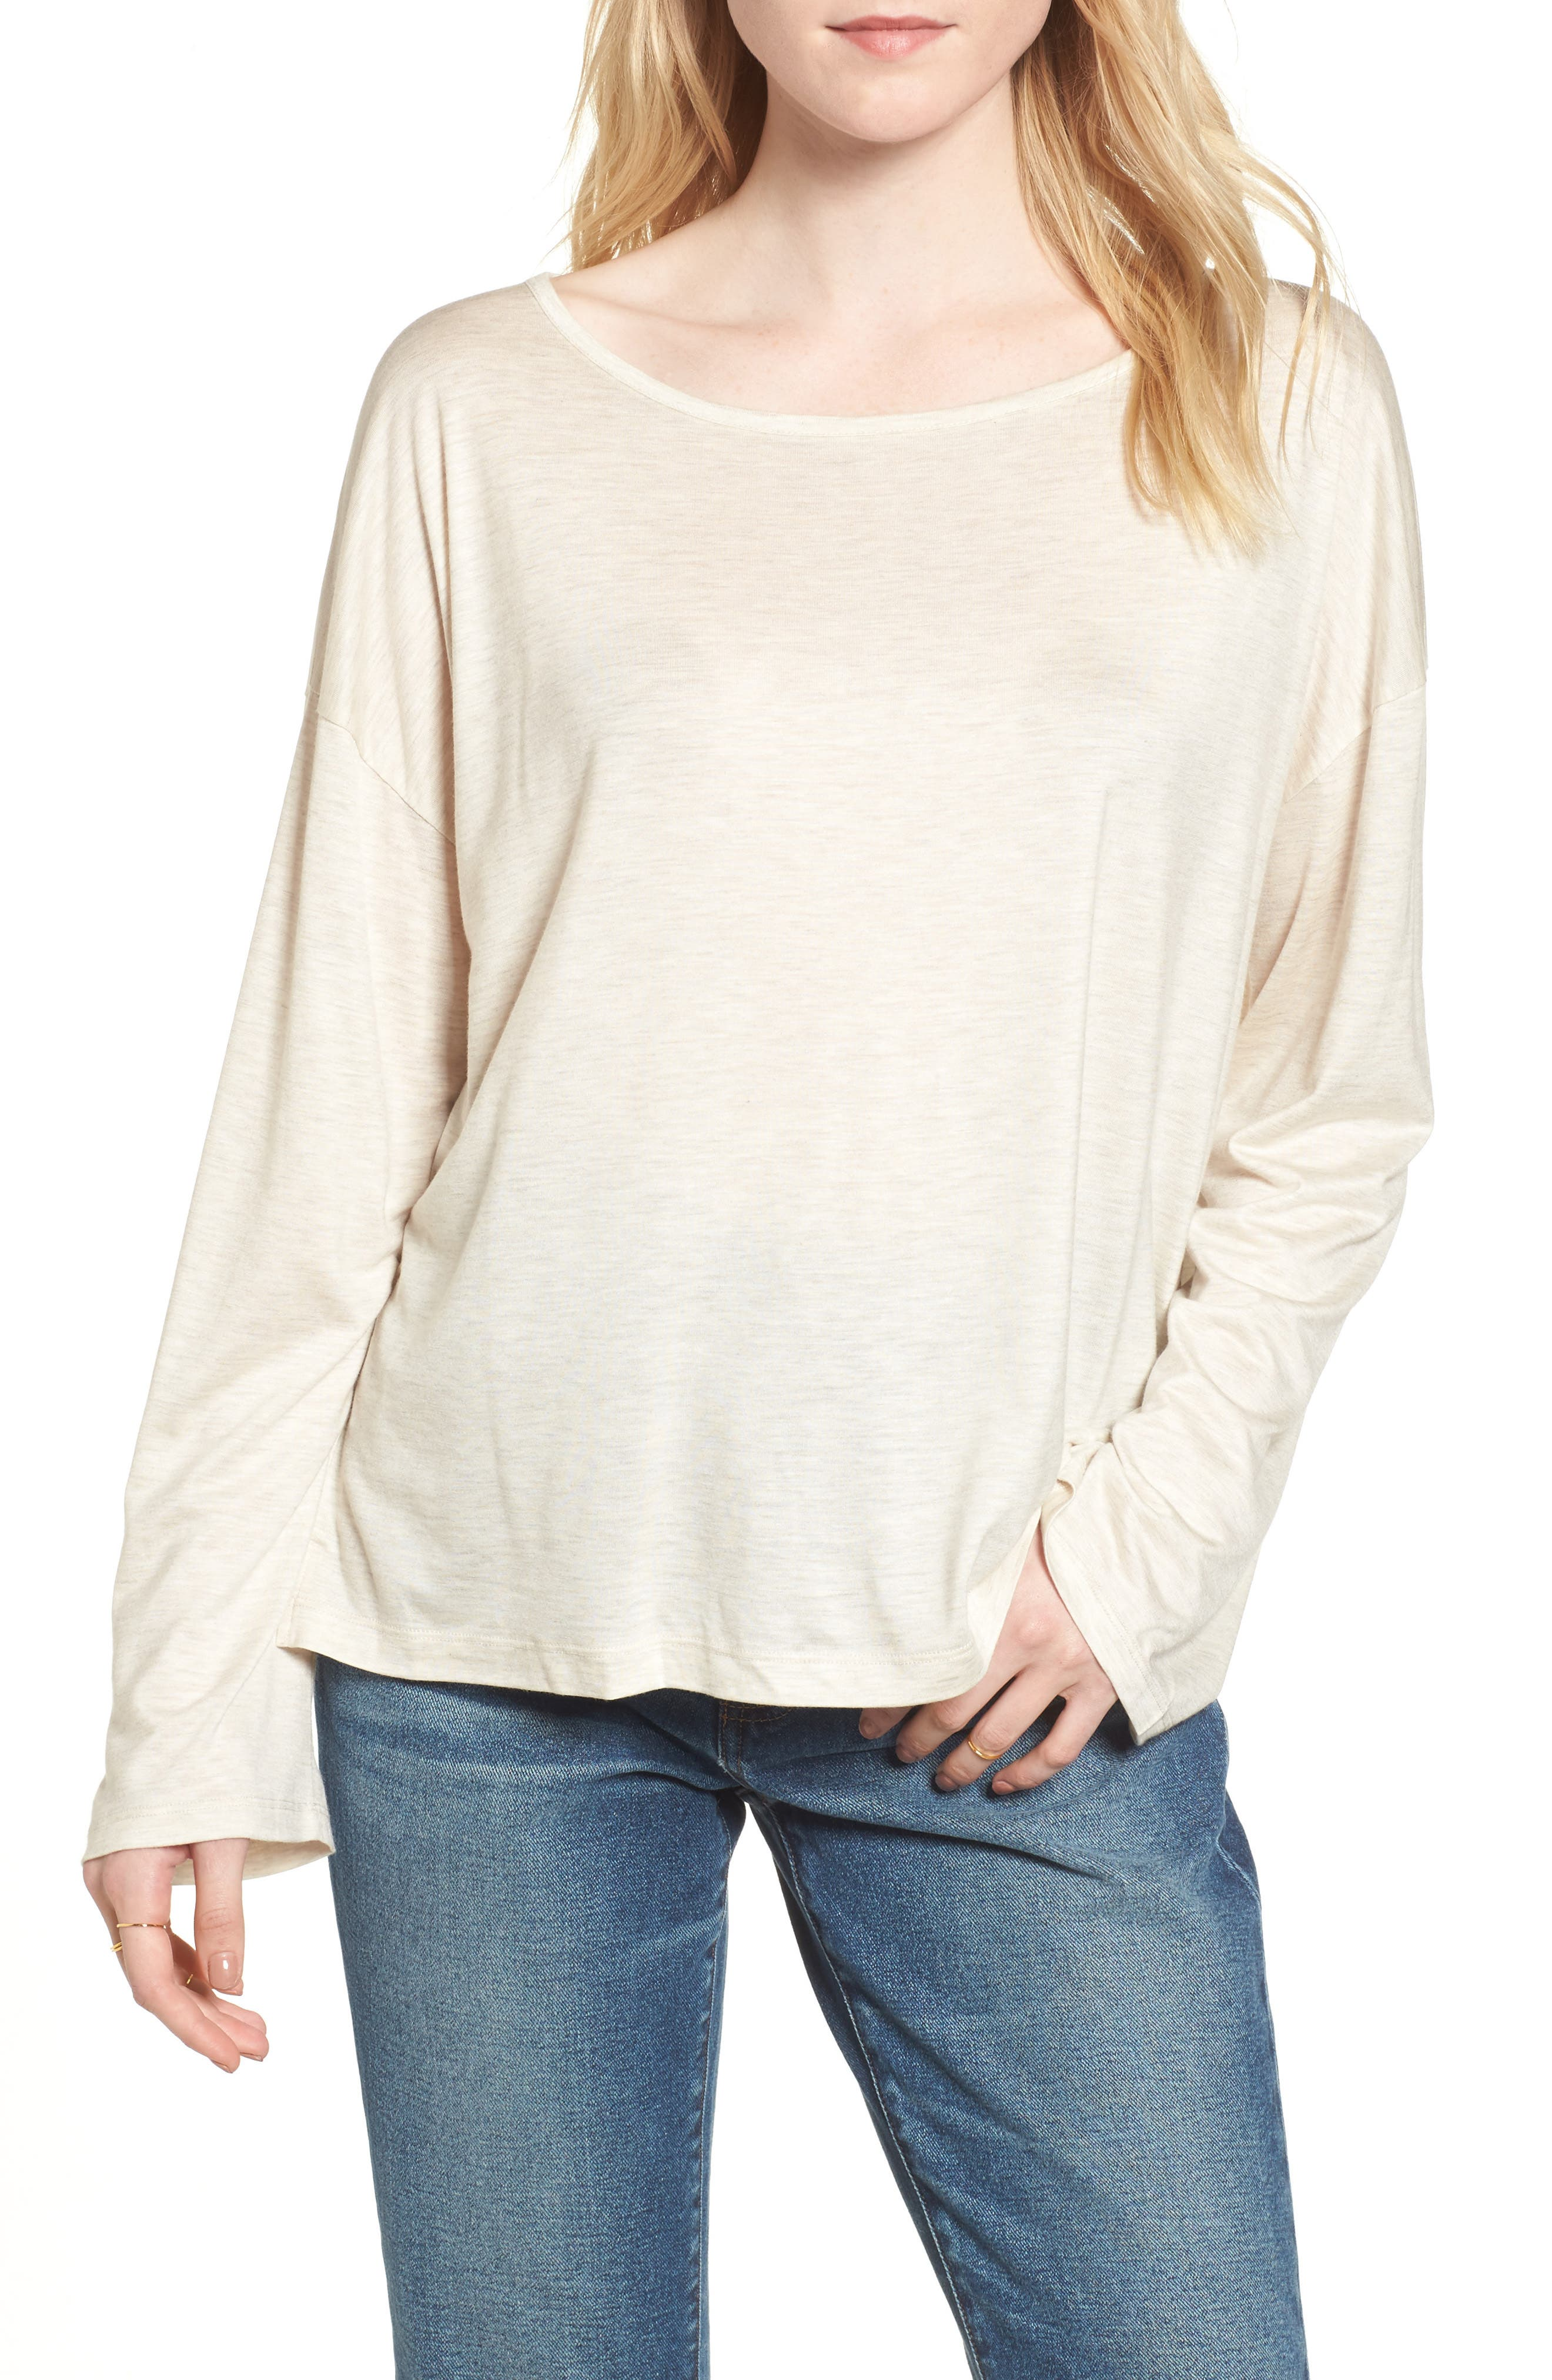 Libretto Wide Sleeve Top,                             Main thumbnail 1, color,                             Heather Dune